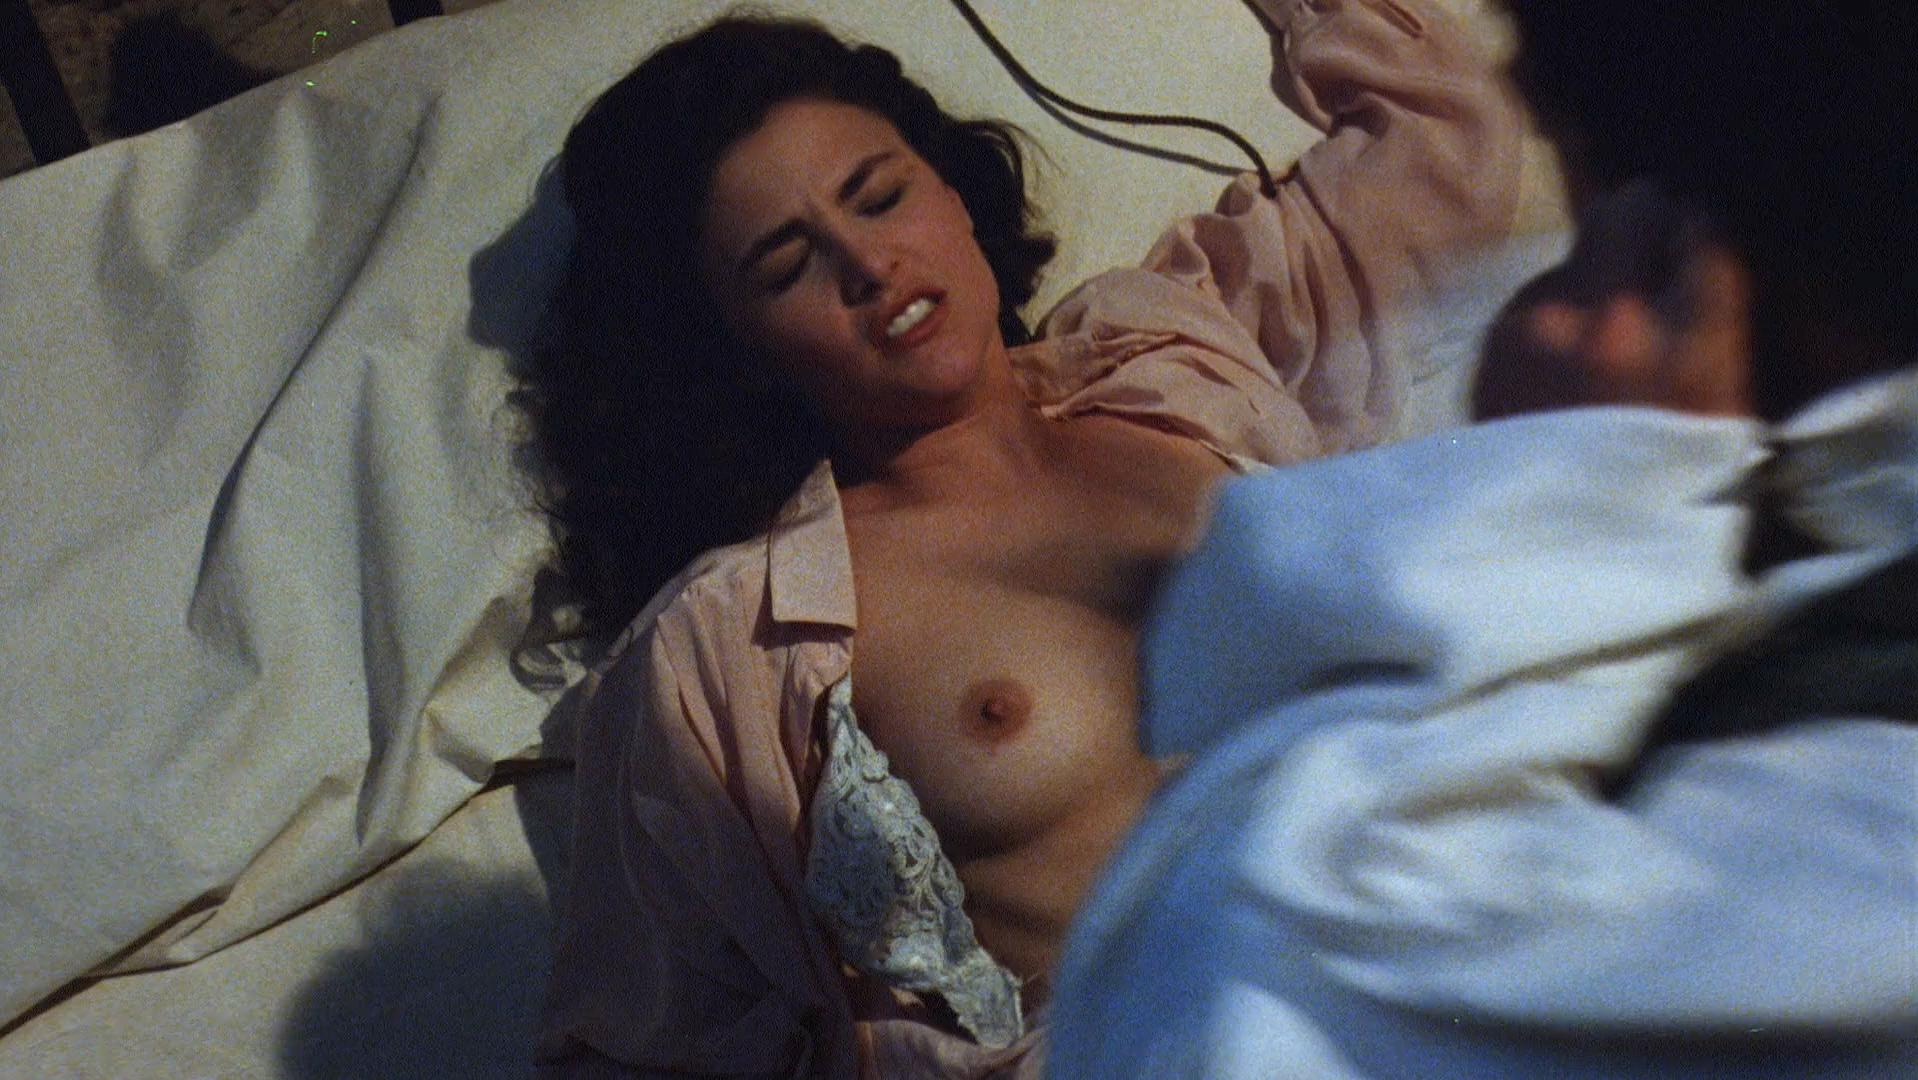 Sherilyn fenn nude scenes know, how